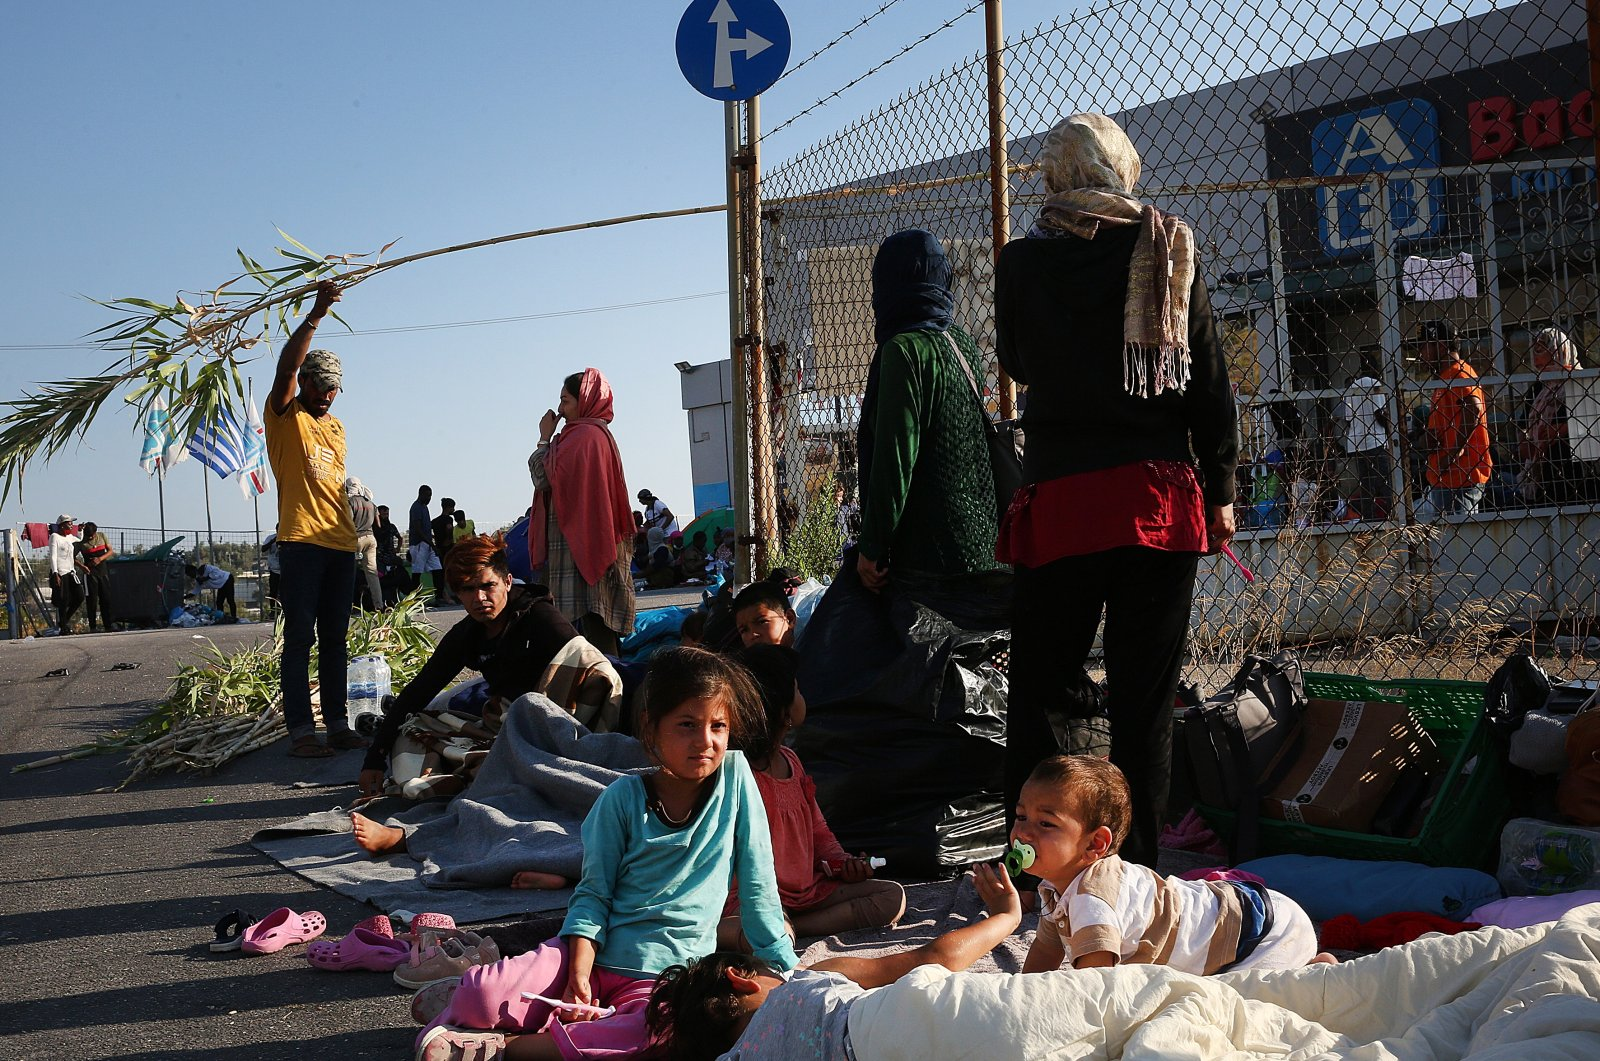 Asylum-seekers rest on the side of a road near the Moria refugee camp that was destroyed in a fire on Sept. 9, Lesbos island, Greece, Sept. 11, 2020. (EPA Photo)